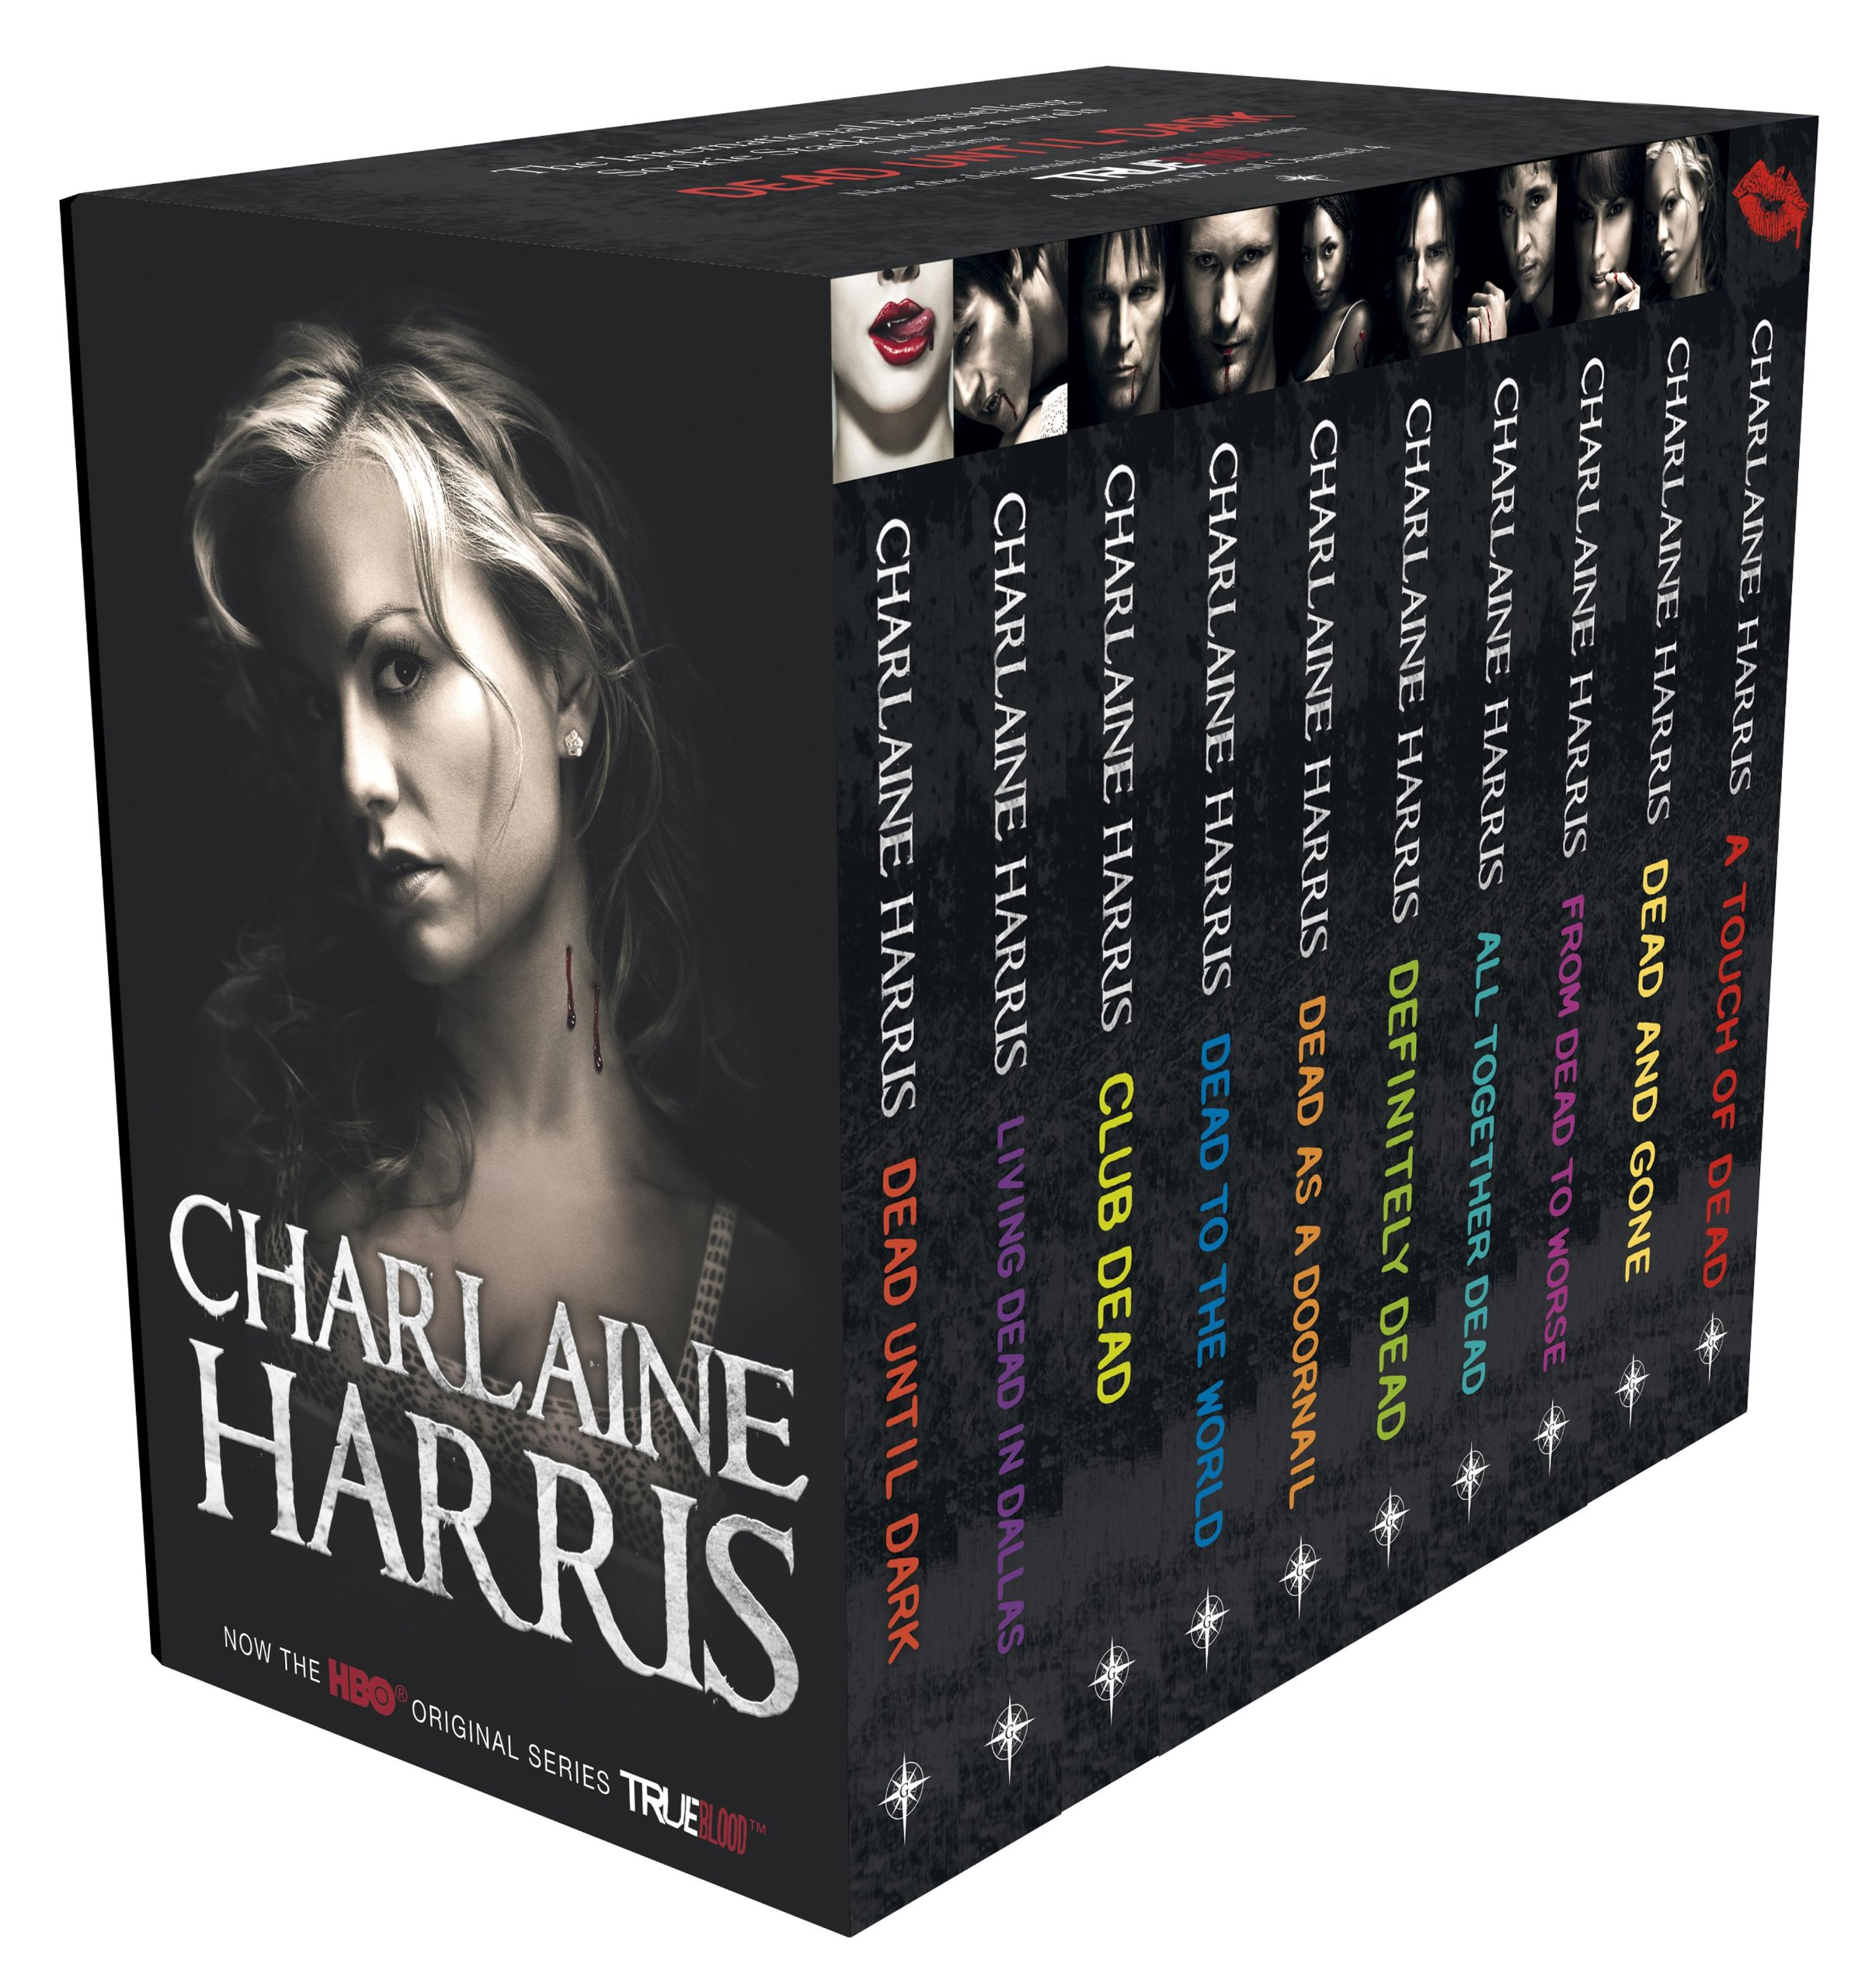 True Blood Boxed Set 2 (sookie Stackhouse Vampire): Amazon: Charlaine  Harris: 8601300346212: Books